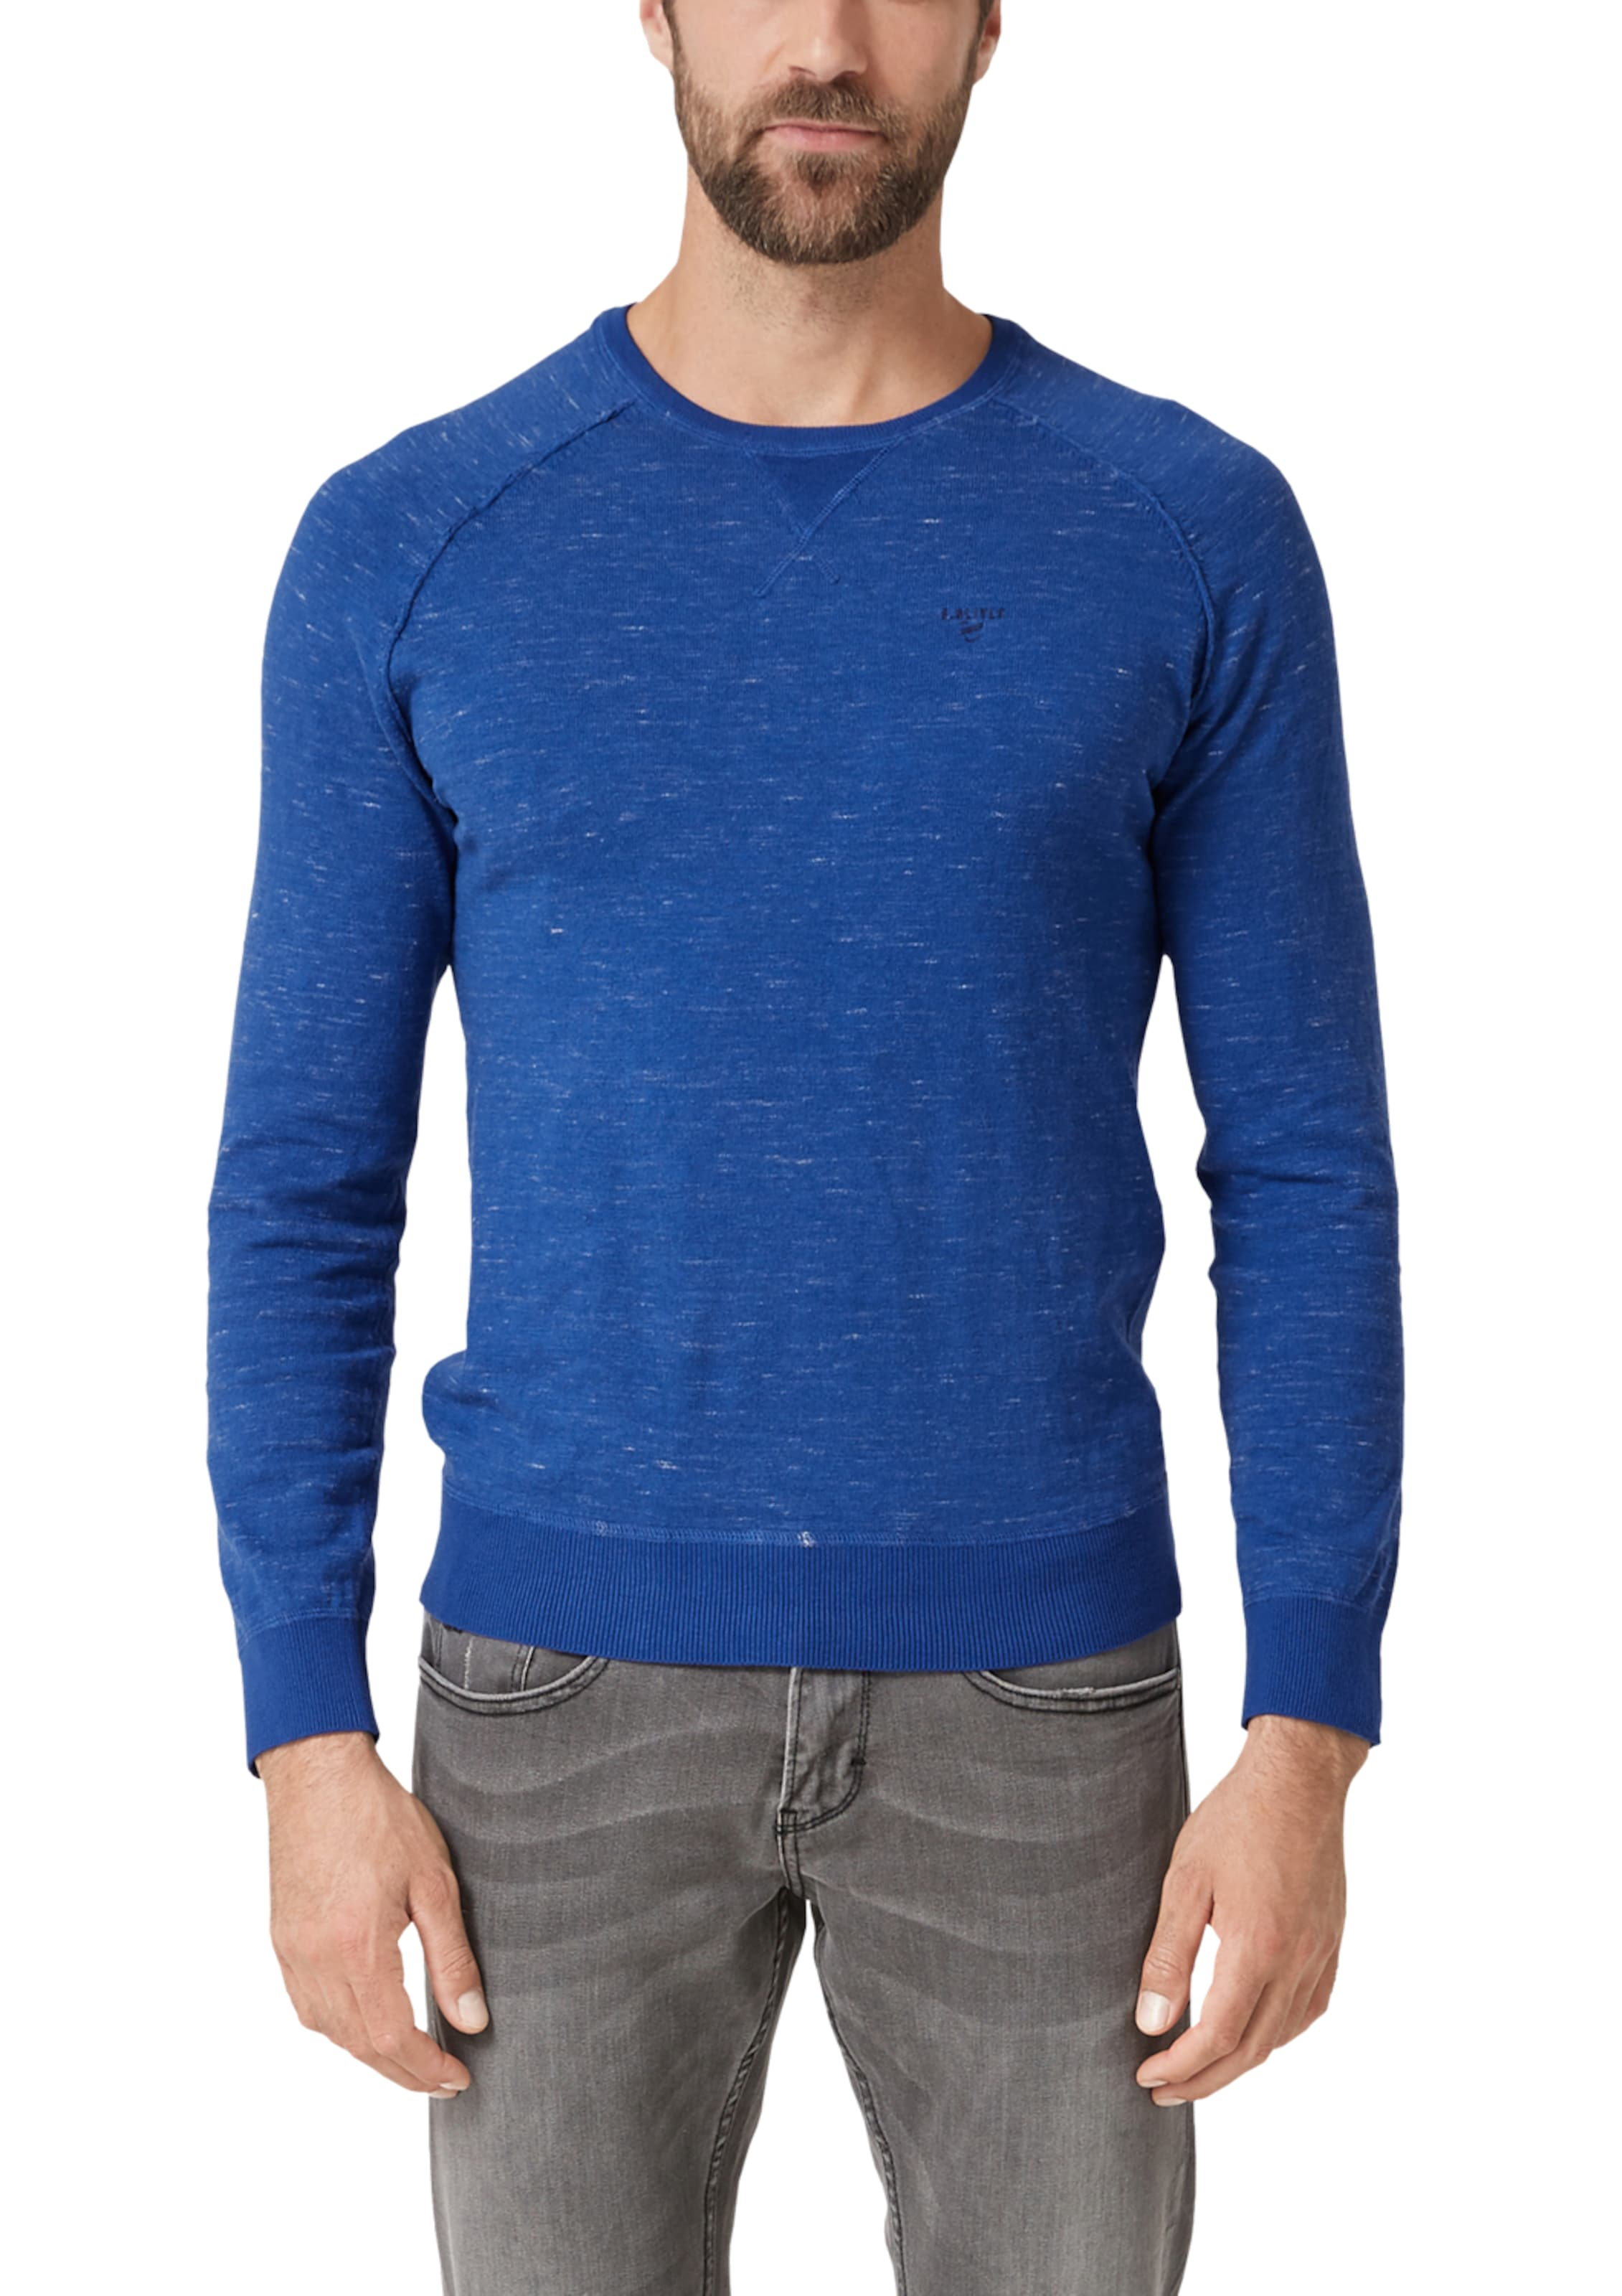 In oliver Label Blau Red S Pullover CdxBoe